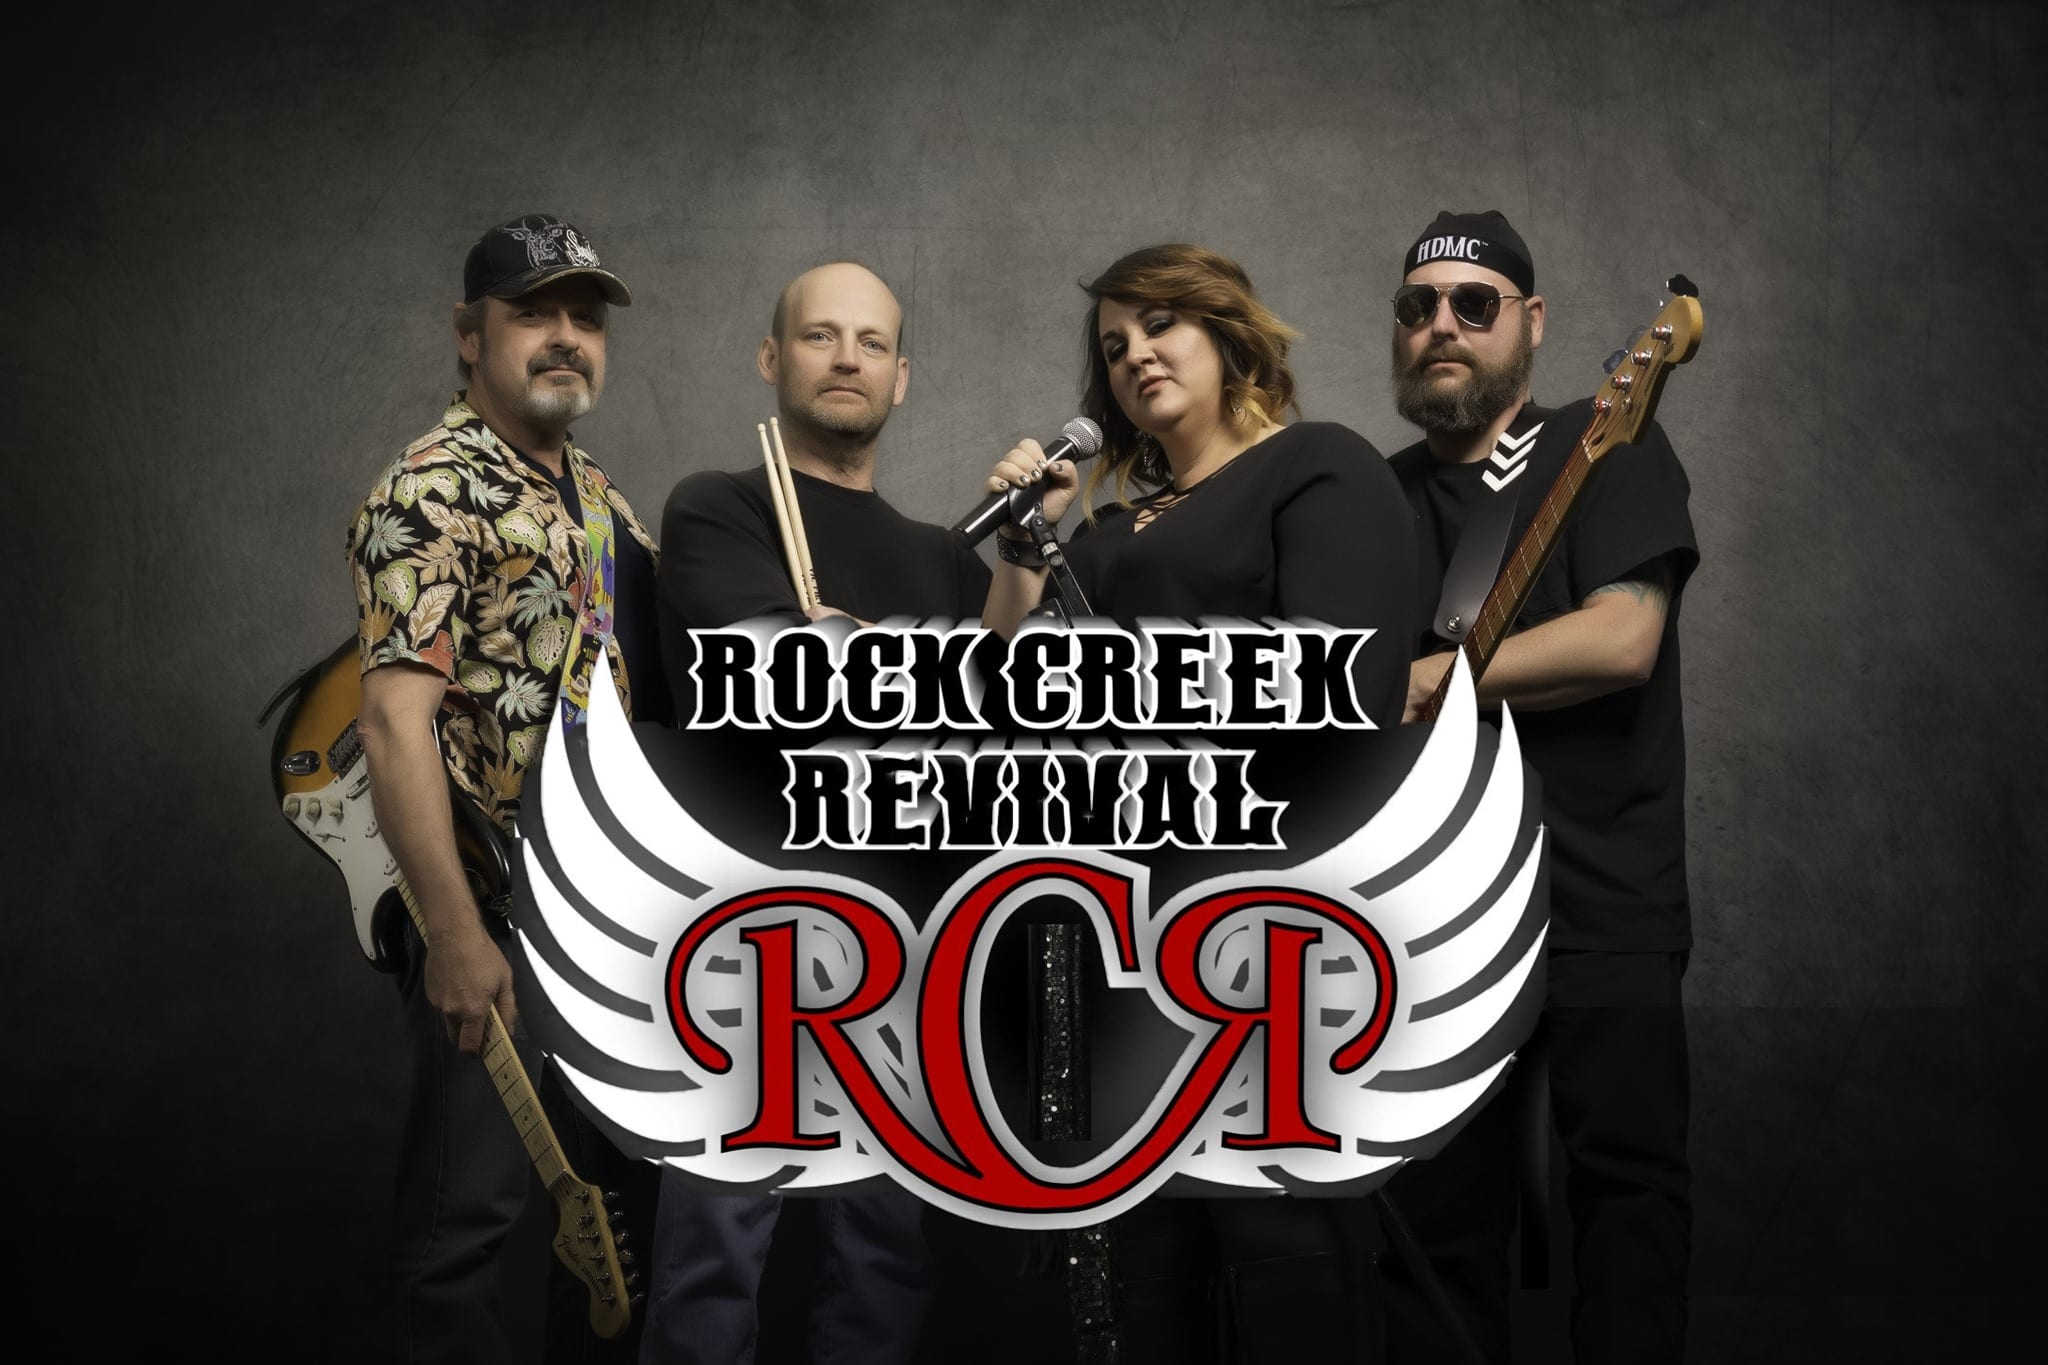 Rock Creek Revival